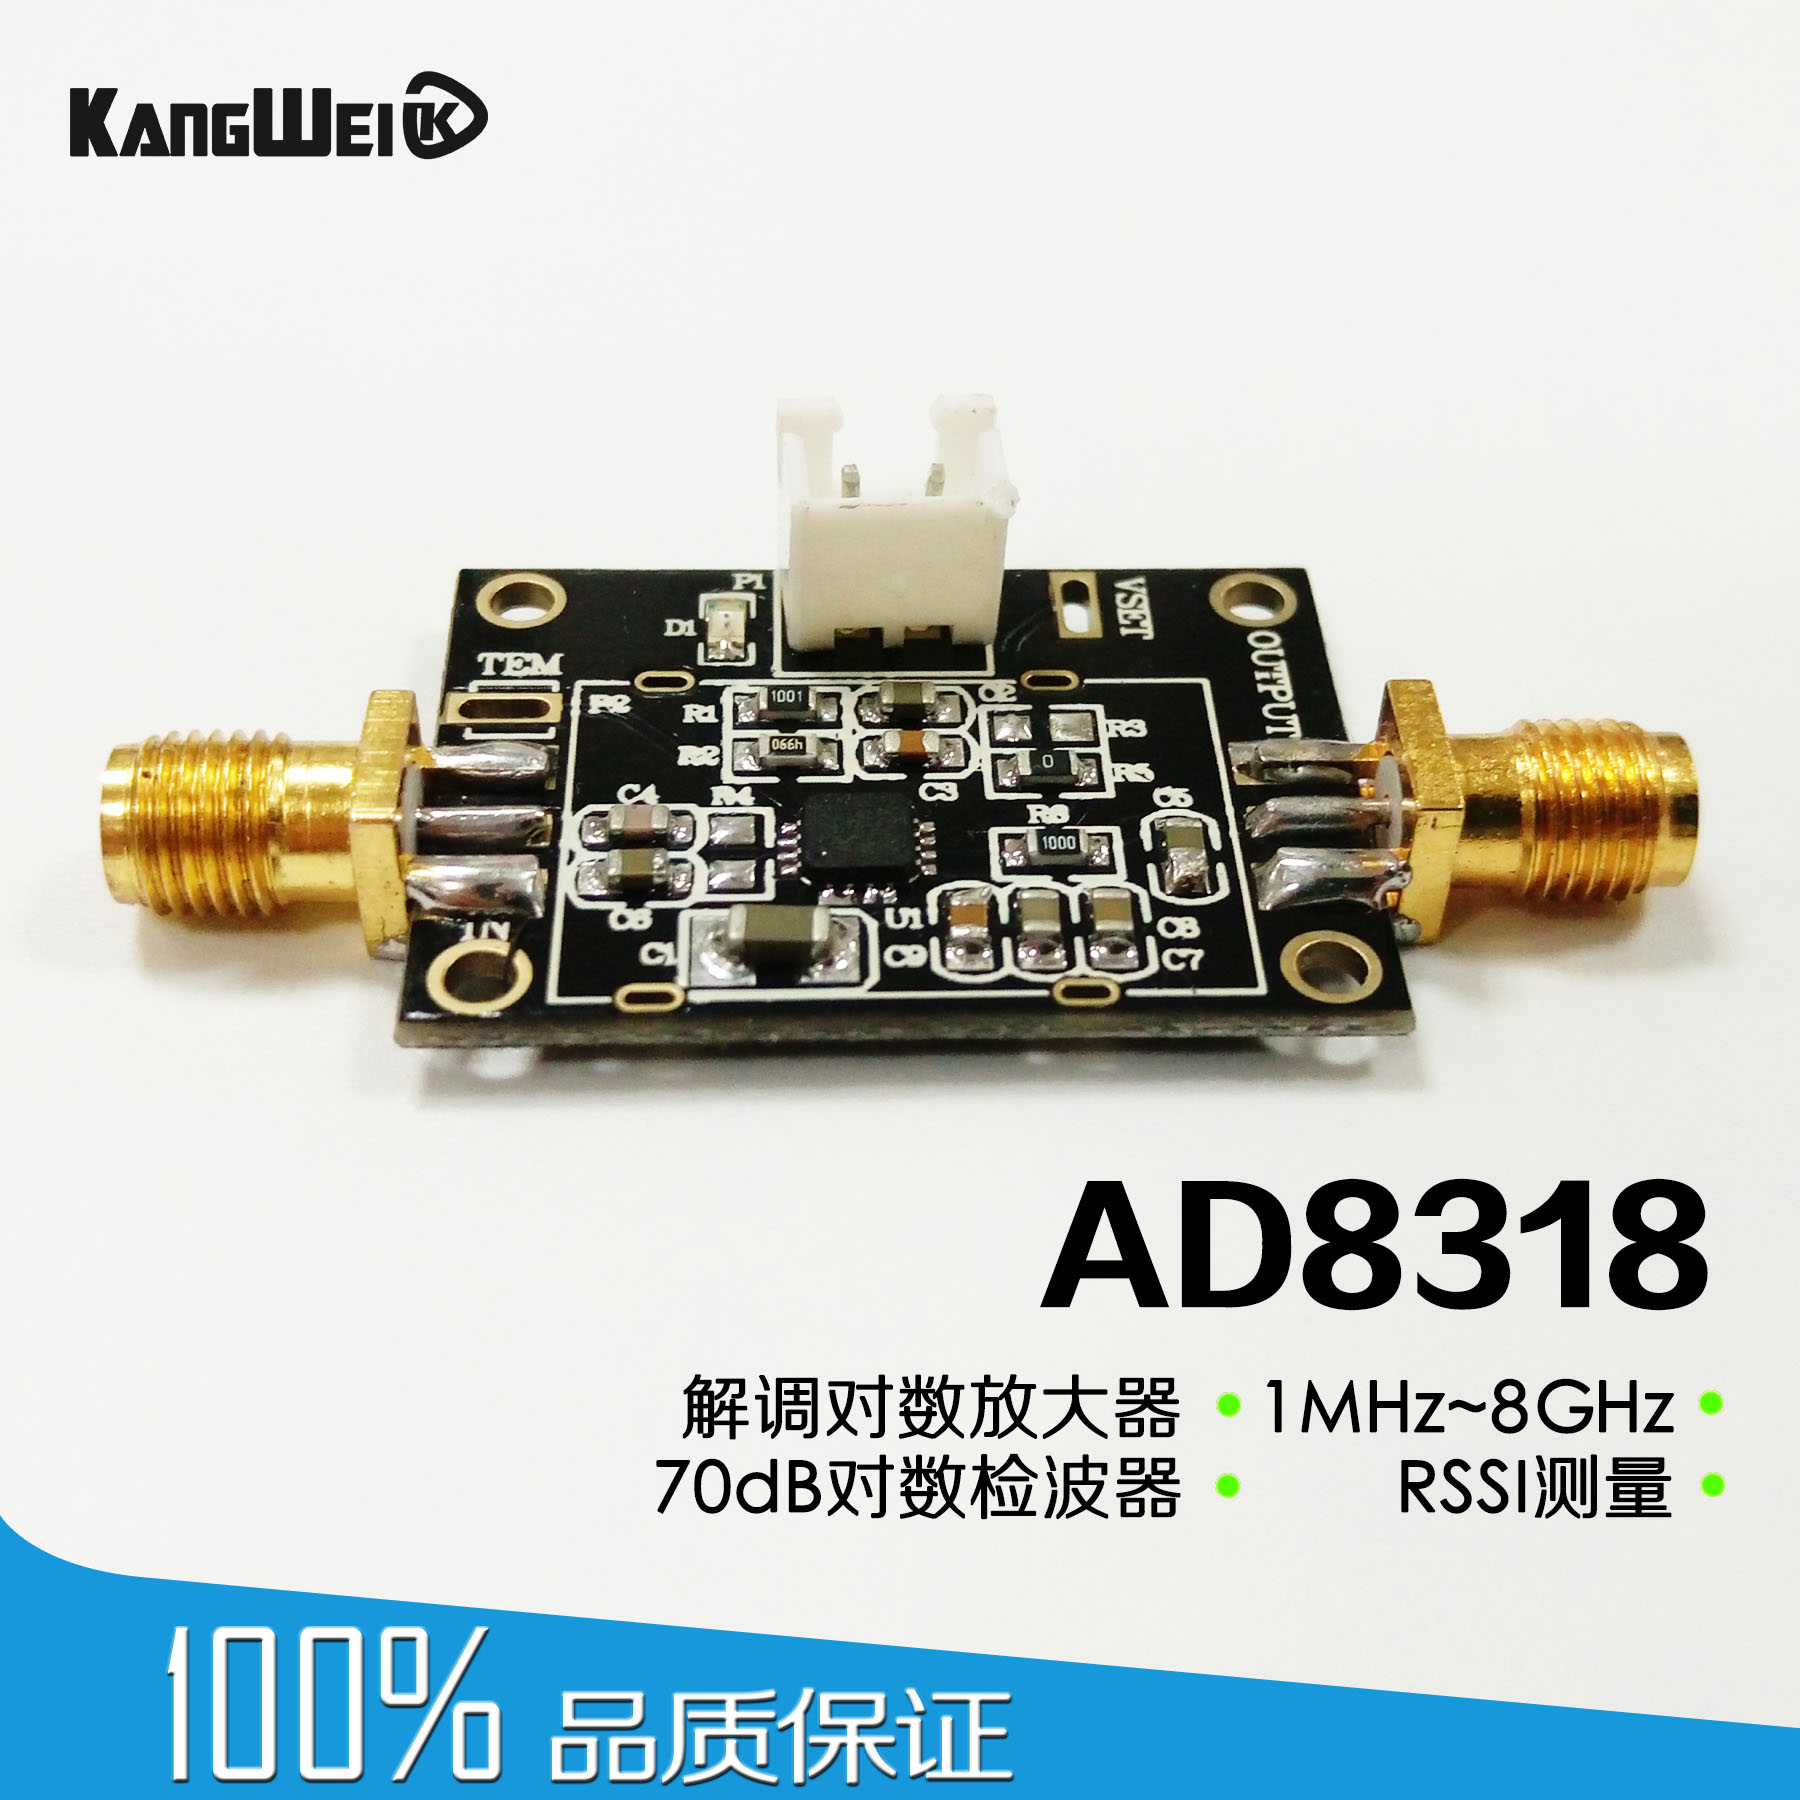 AD8318 Module, Logarithmic Detection Power Detection Module, 1M-8GHz, RSSI, RF Power Meter<br>